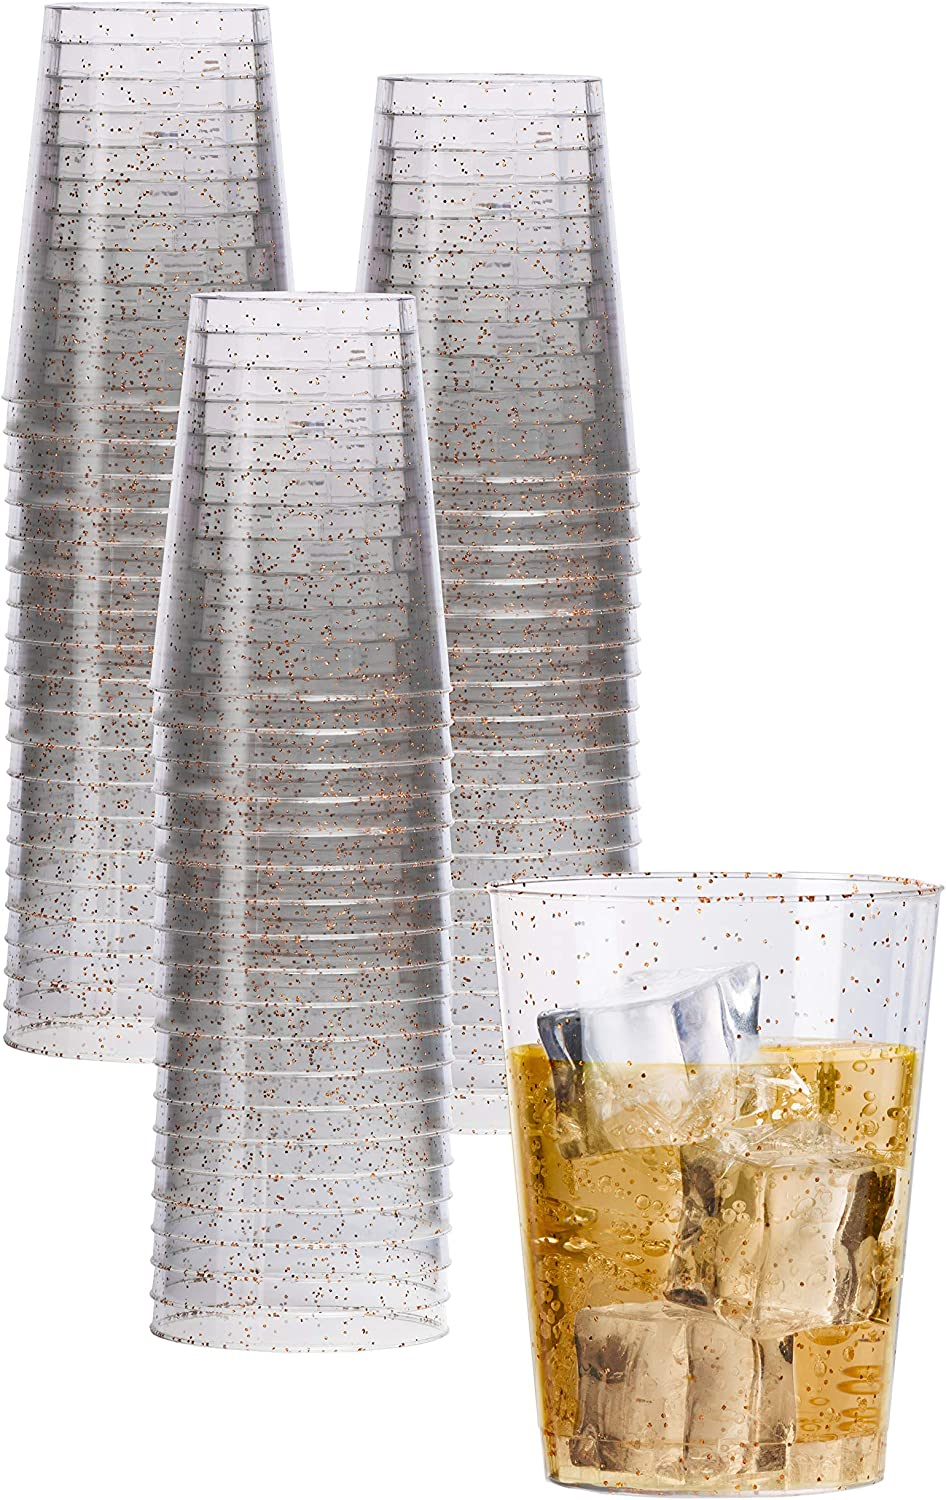 Exquisite 120 Count 10 oz Rose Gold Glitter Clear Plastic Cups Tumblers - Hard Plastic Disposable Cups For Wedding Glasses - Plastic Party Cups For Cocktail Wine and More.